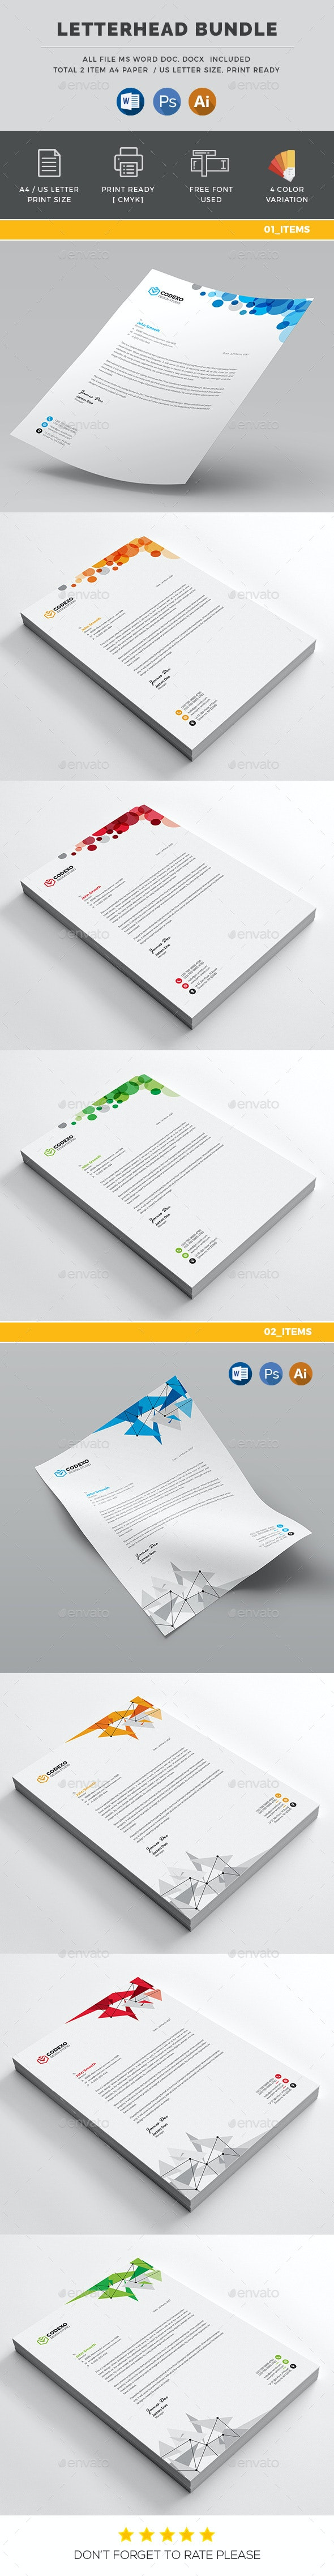 Letterhead Bundle_ 2 in 1 - Stationery Print Templates